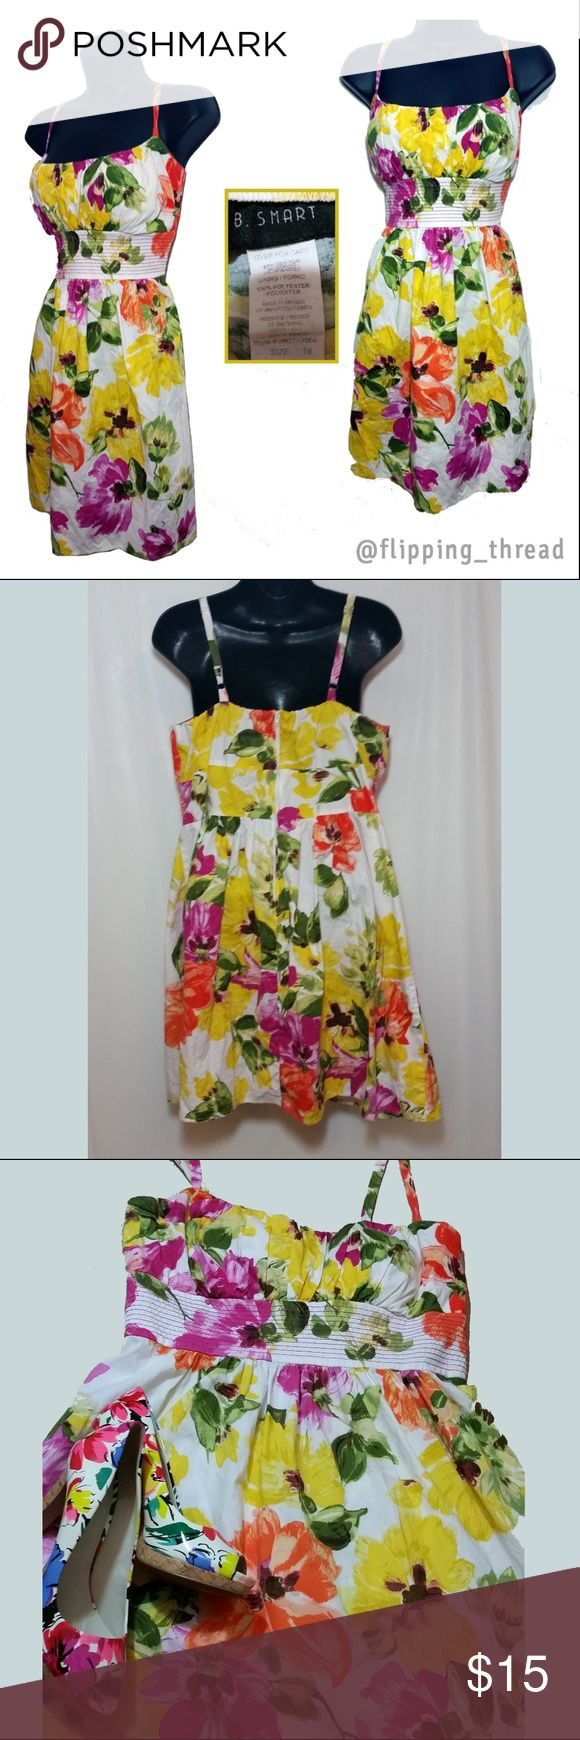 B. Smart Floral Empire Waist Dress Excellent Condition.  Bust: 43 in Waist: 31 in Hips: 41 in Length: 27 in B. Smart Dresses Mini